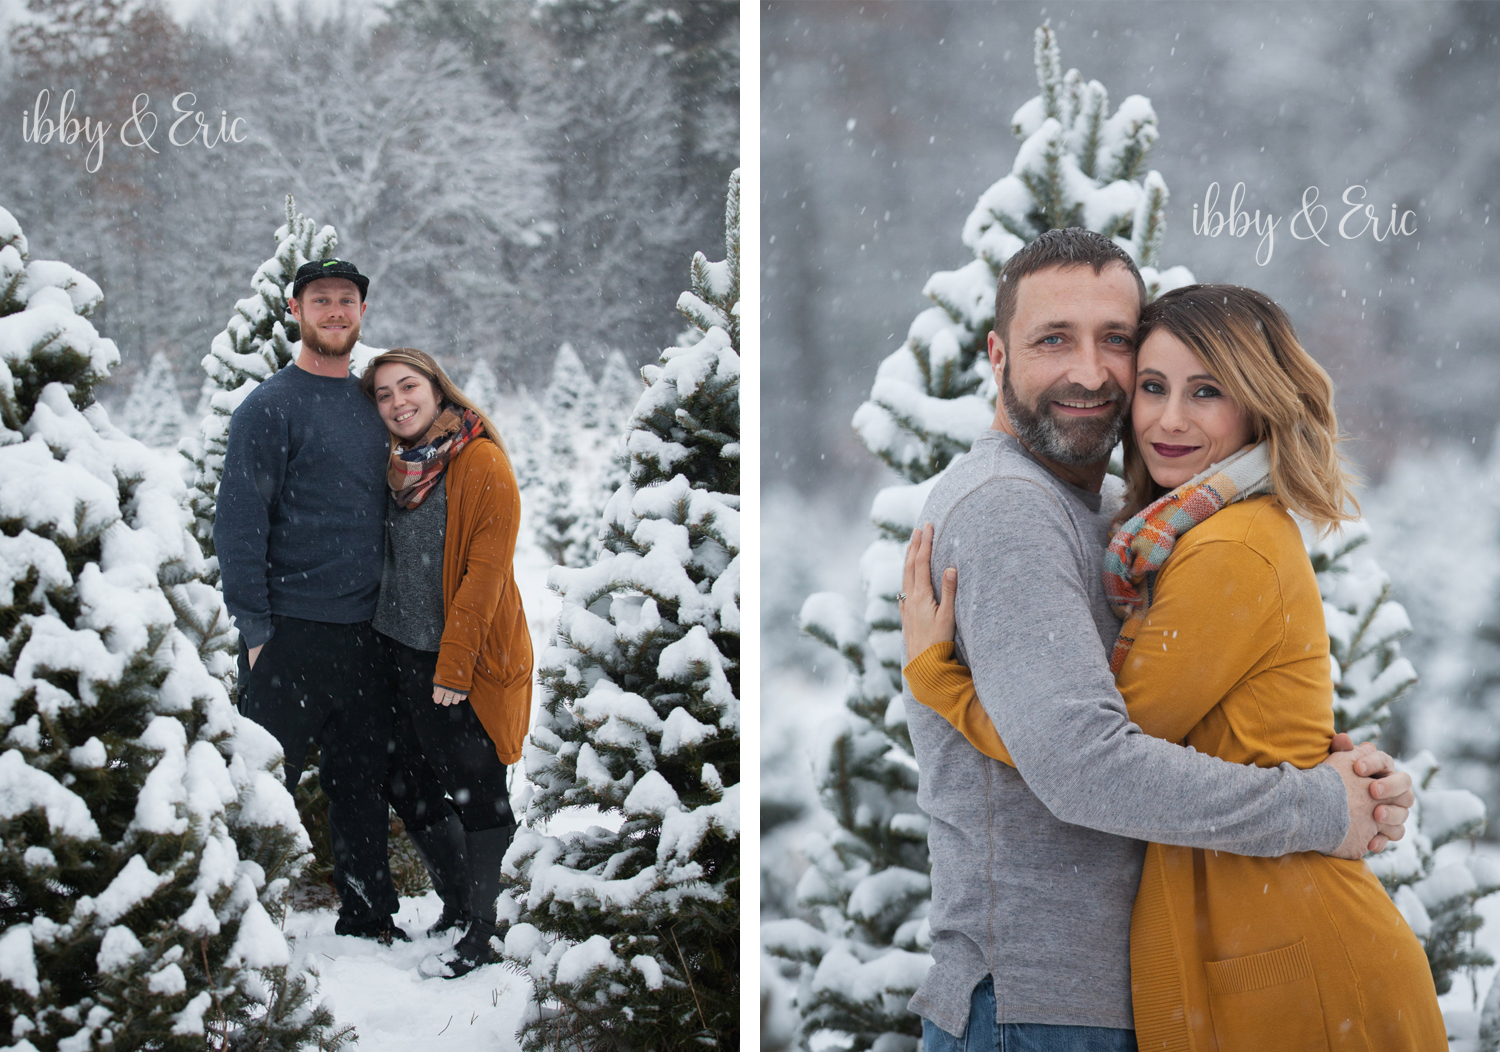 Two photos of couples wearing mustard yellow and gray hugging in front of snowy Christmas pine trees.